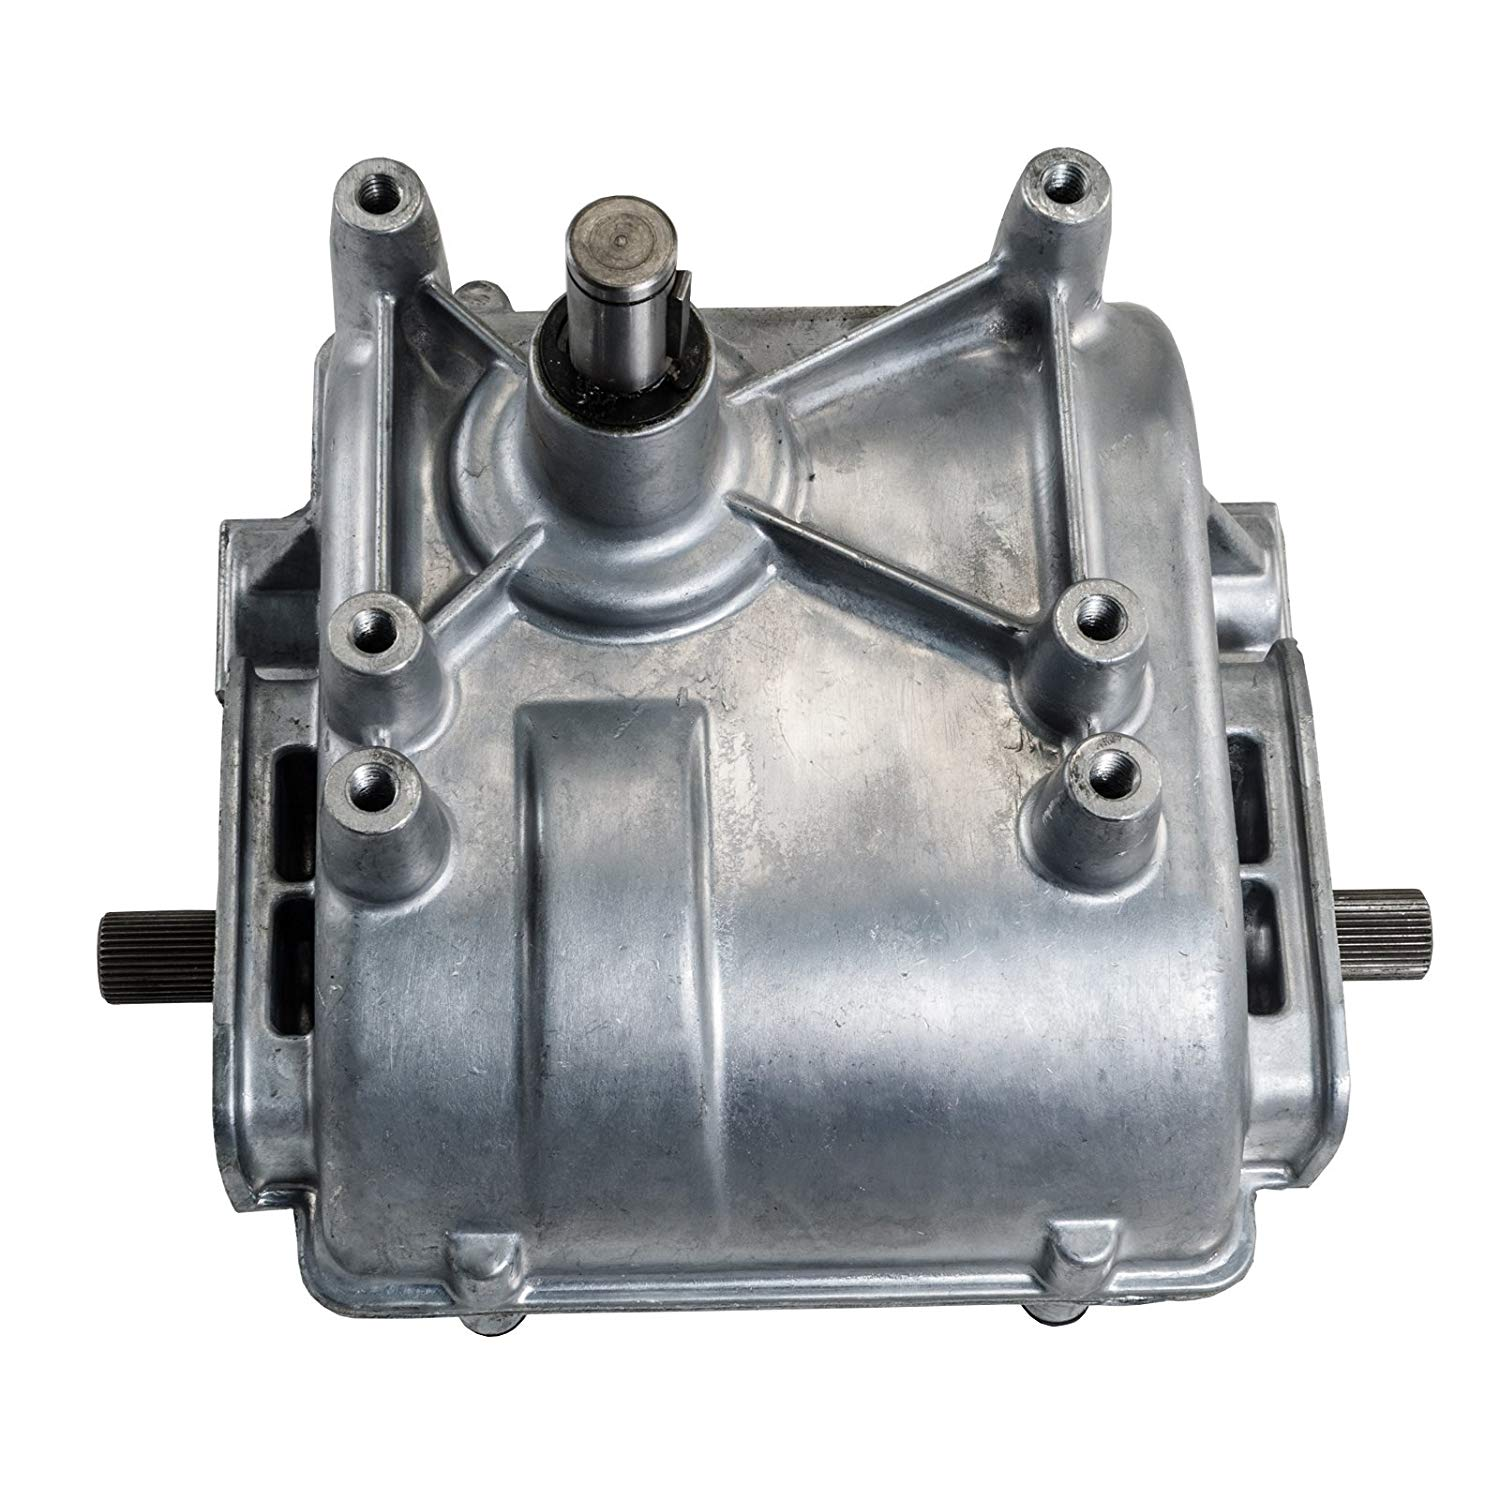 Cheap Peerless Transmission Parts, find Peerless Transmission Parts